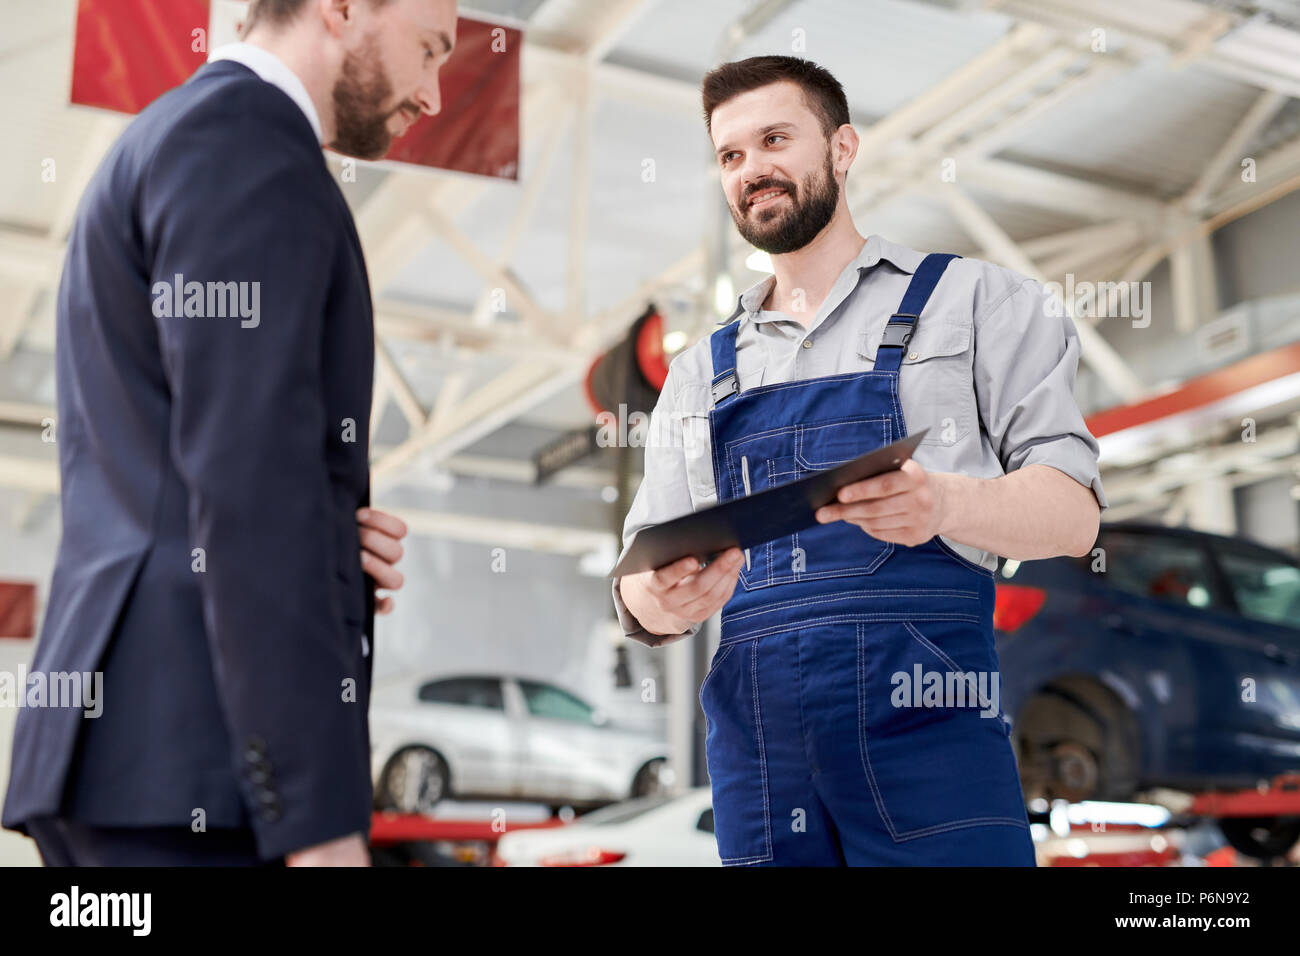 Smiling Mechanic Giving Contract to Client Stock Photo